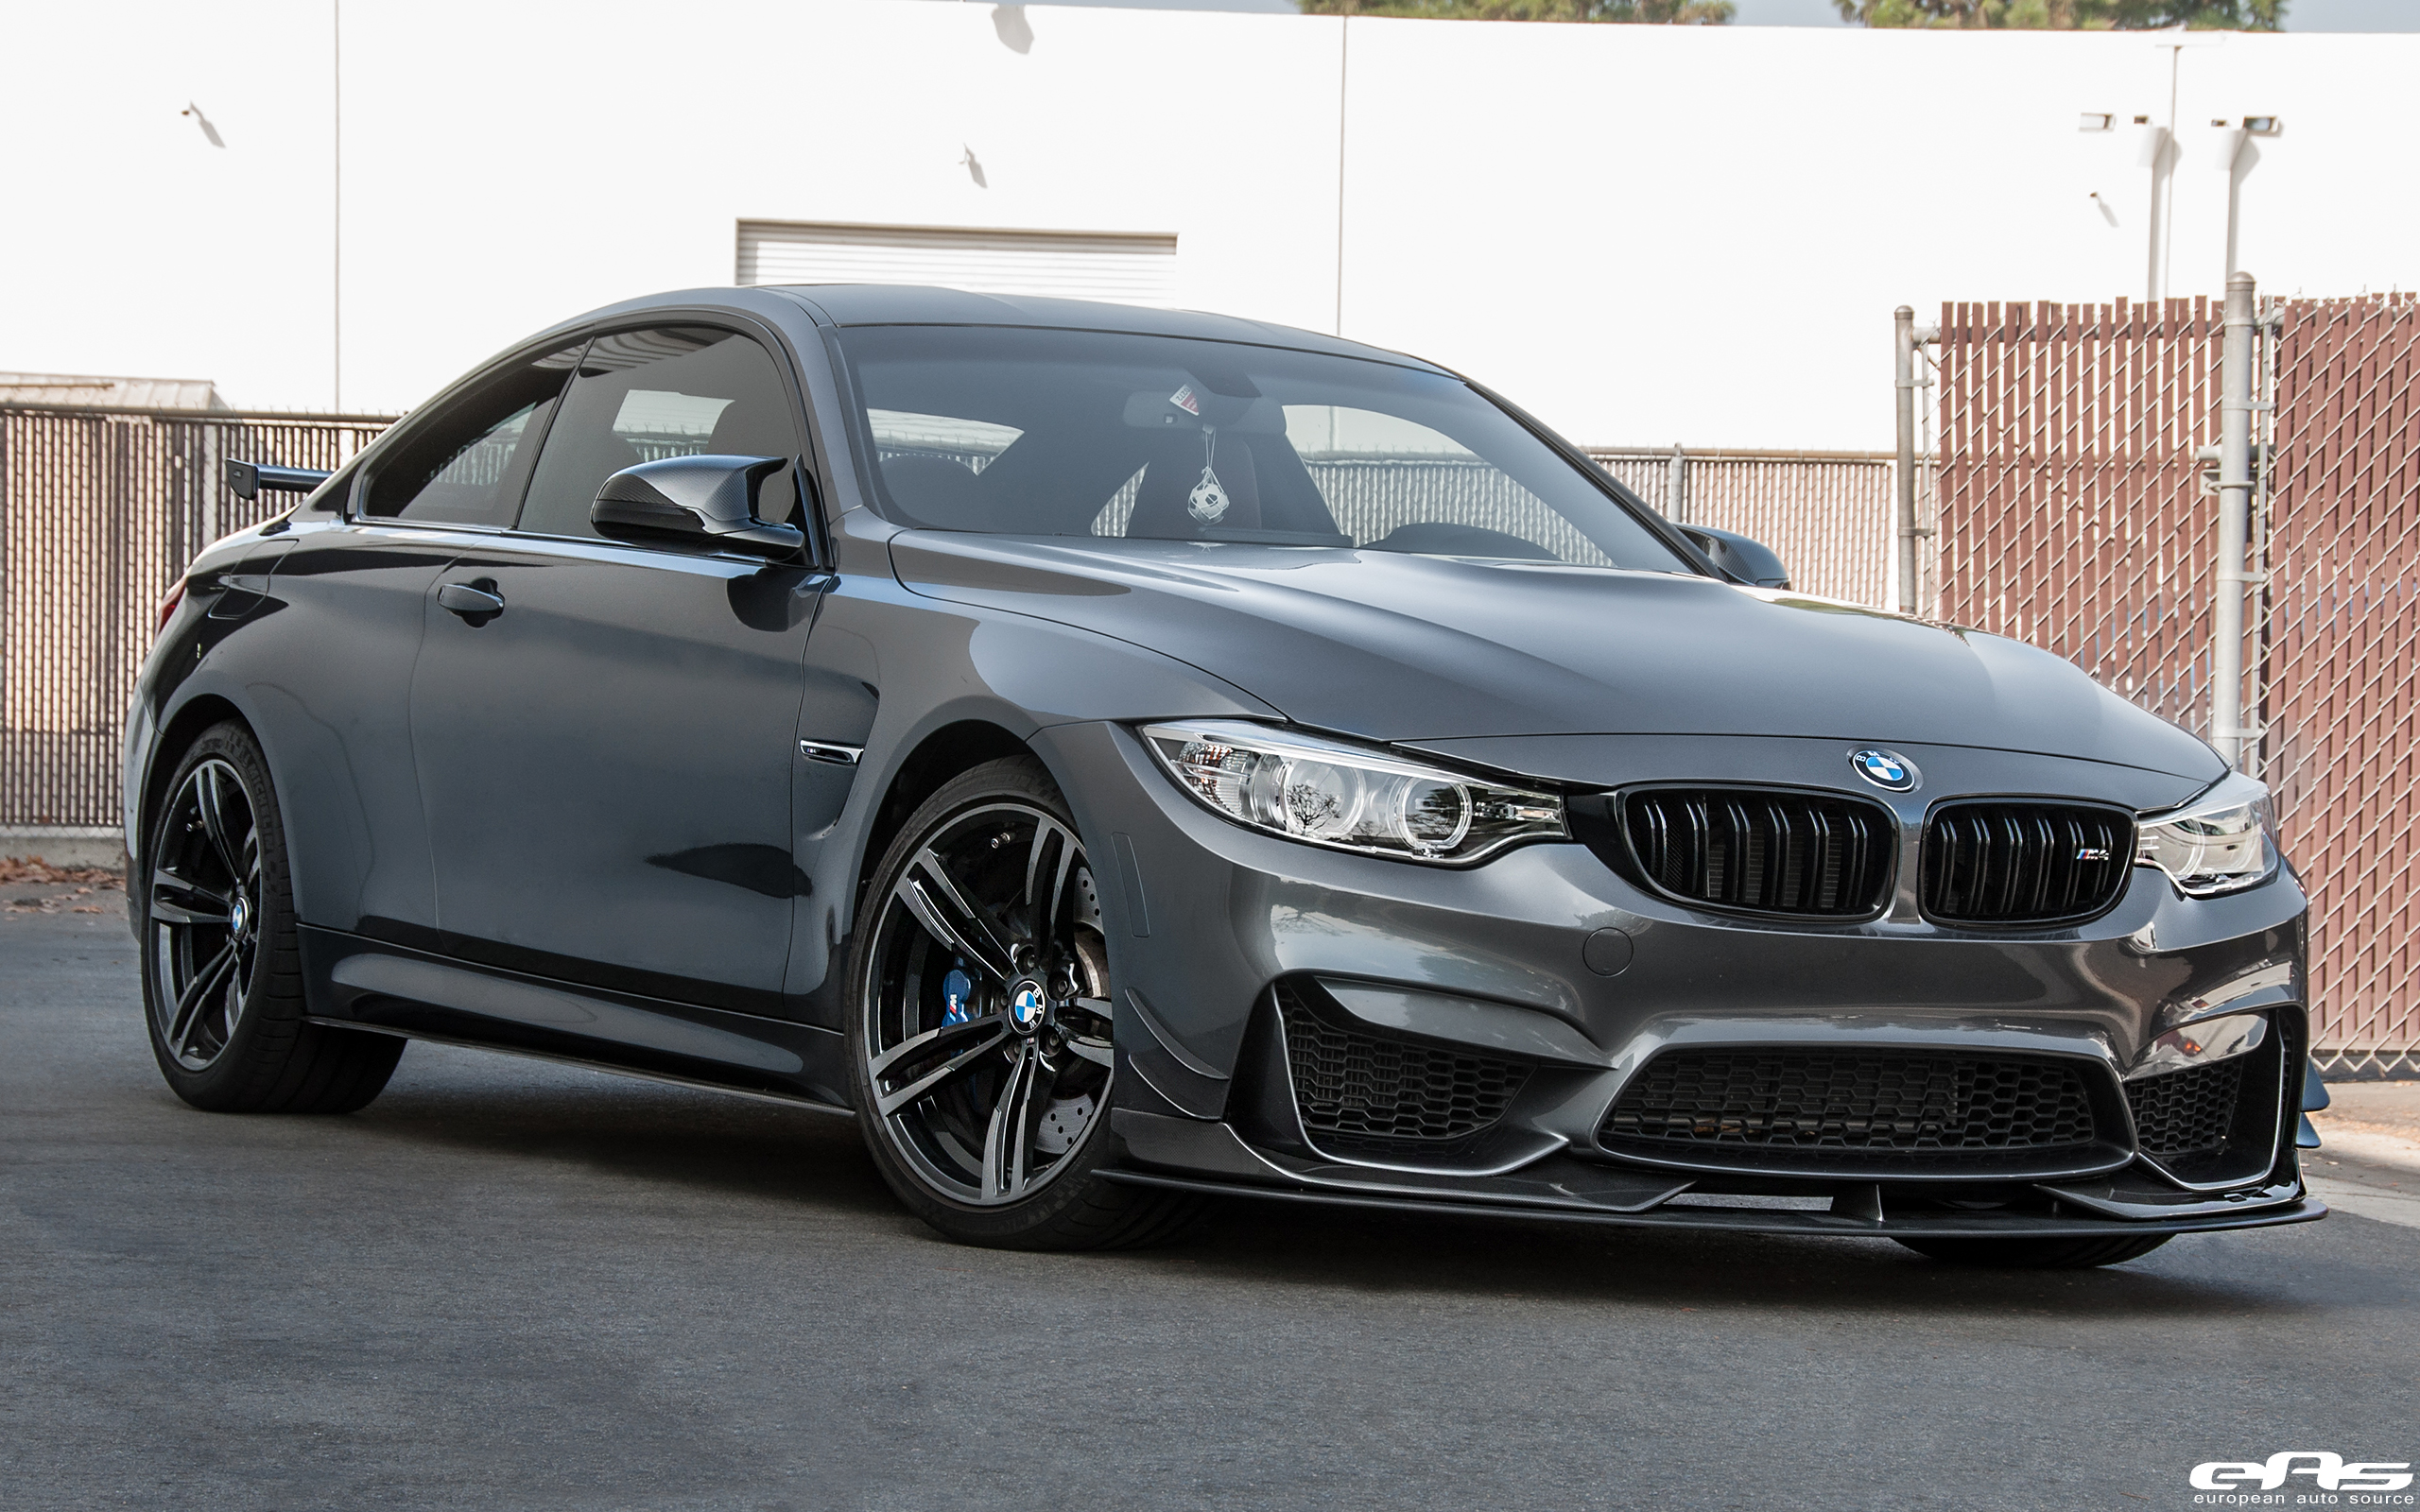 Mineral Grey M4 Gets Ac Schnitzer Aero Bmw Performance Parts Amp Services